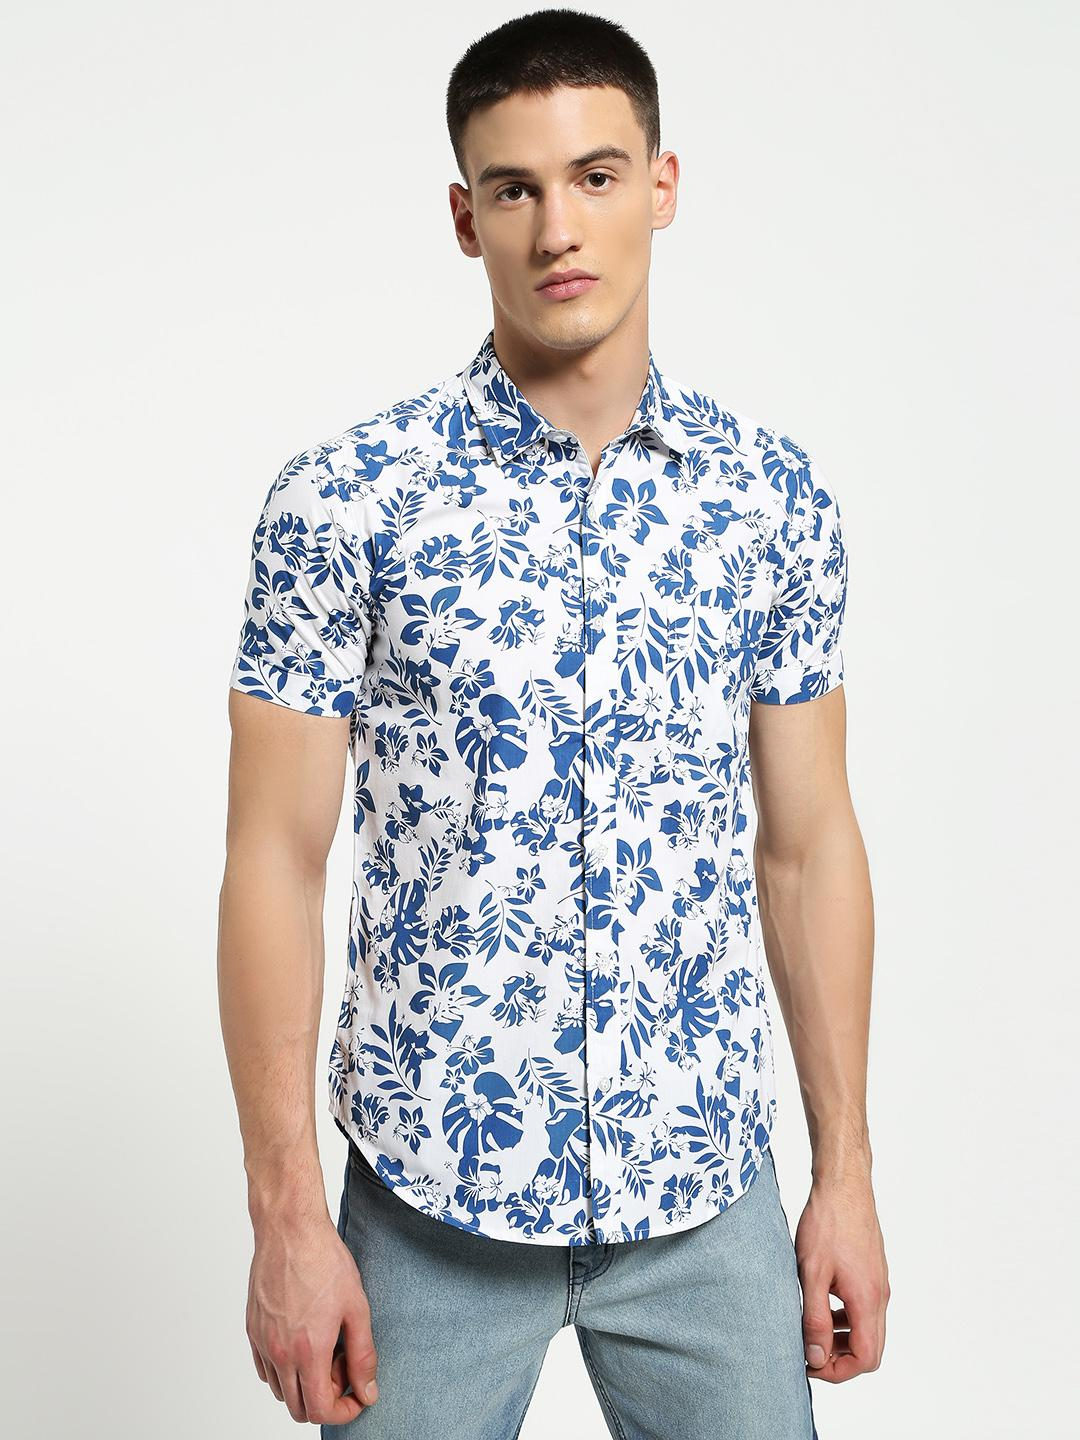 Lazy Panda Multi Floral Leaf Print Shirt 1